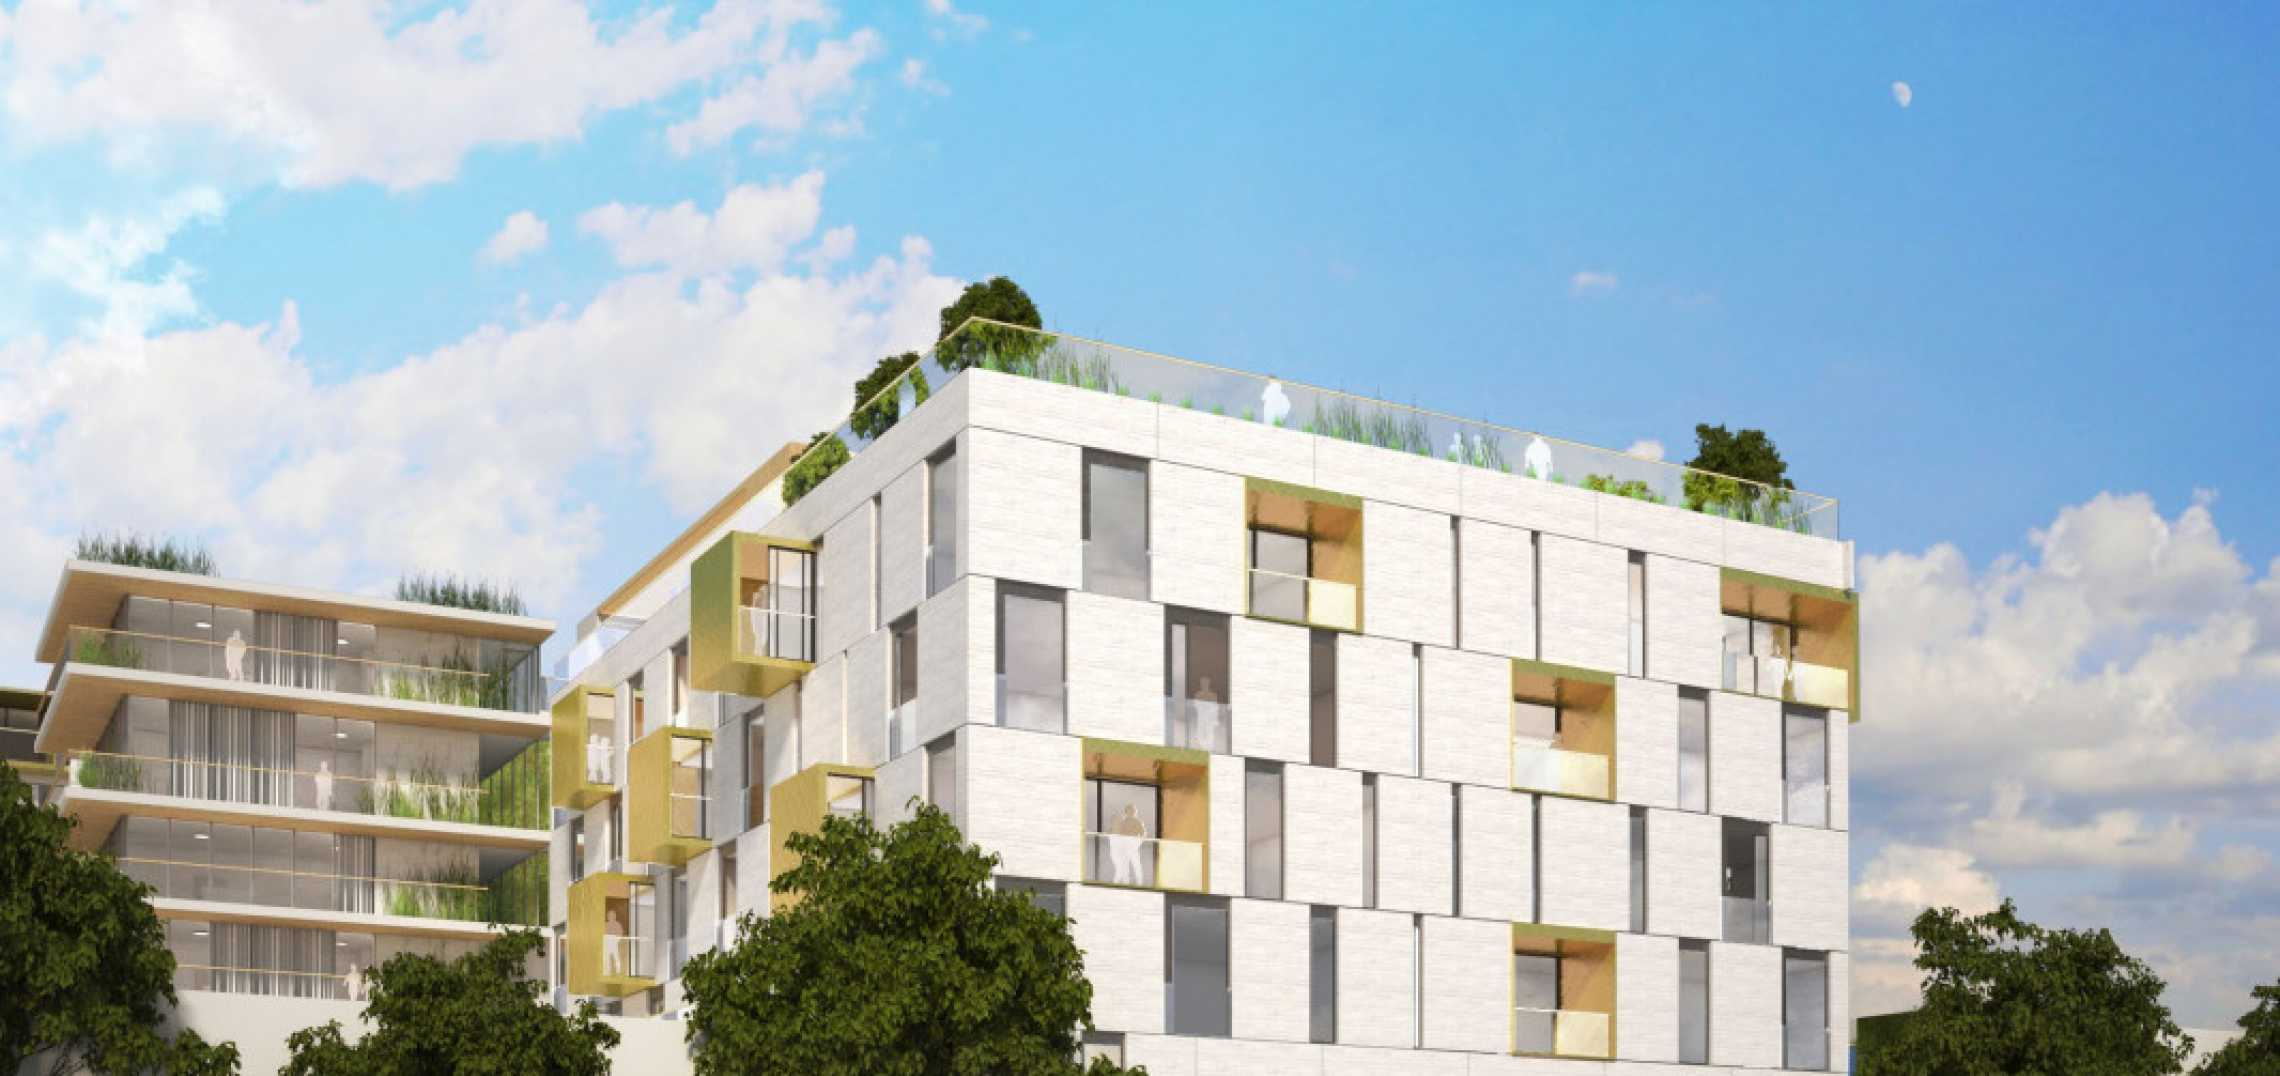 Hotel and Multifamily Housing Planned Near Santa Monica & Fairfax